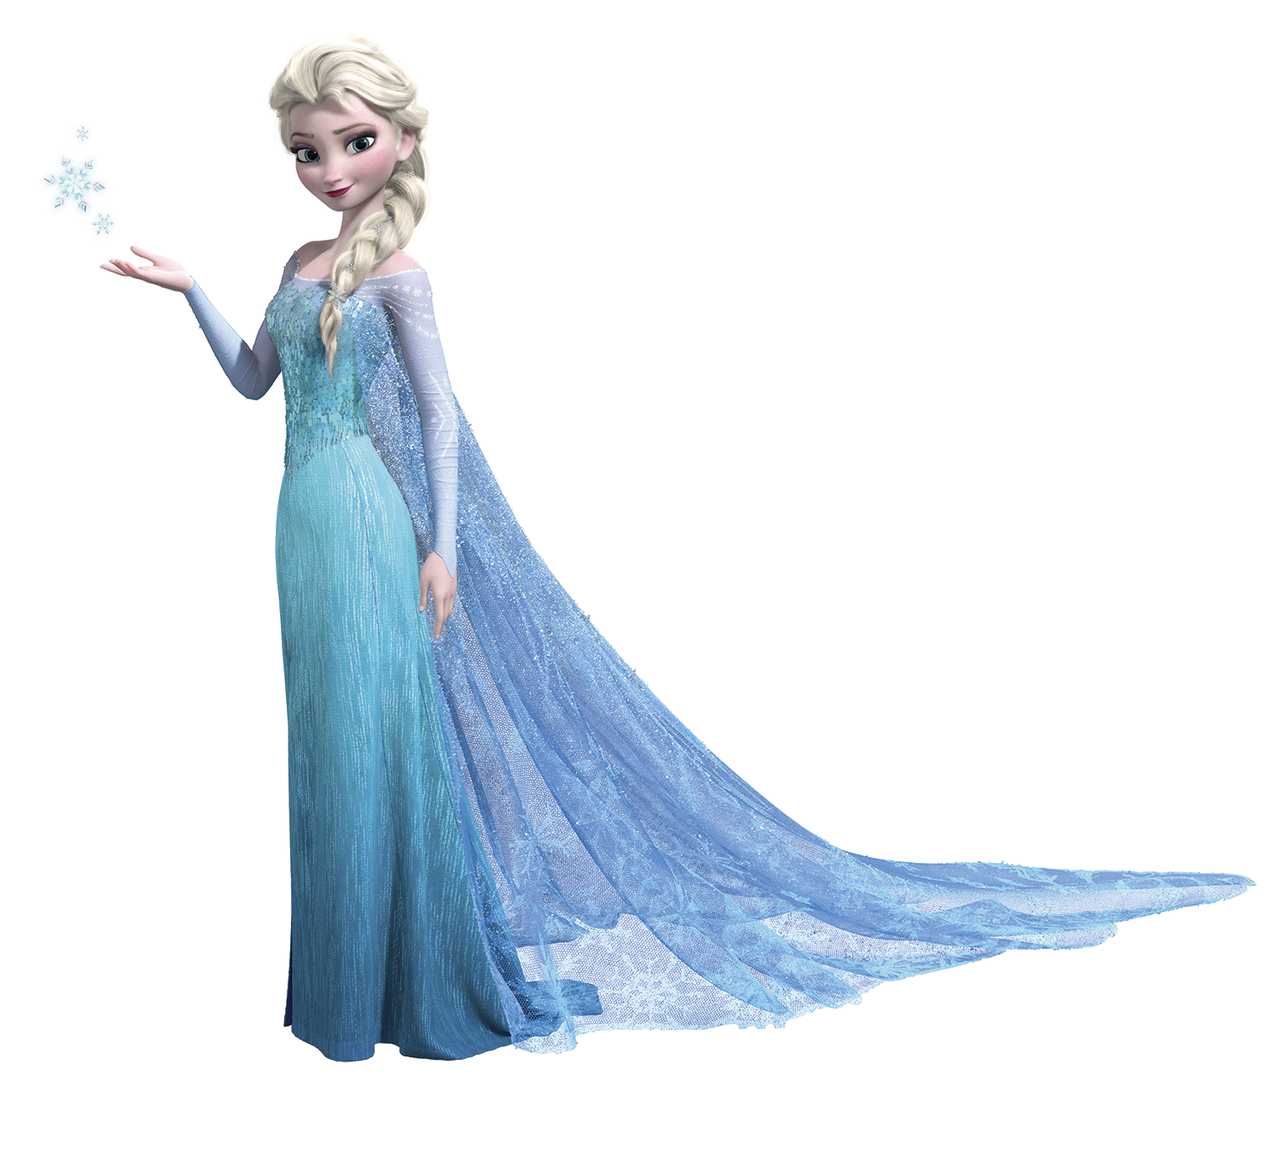 Elsa Frozen Disney Important Wallpapers